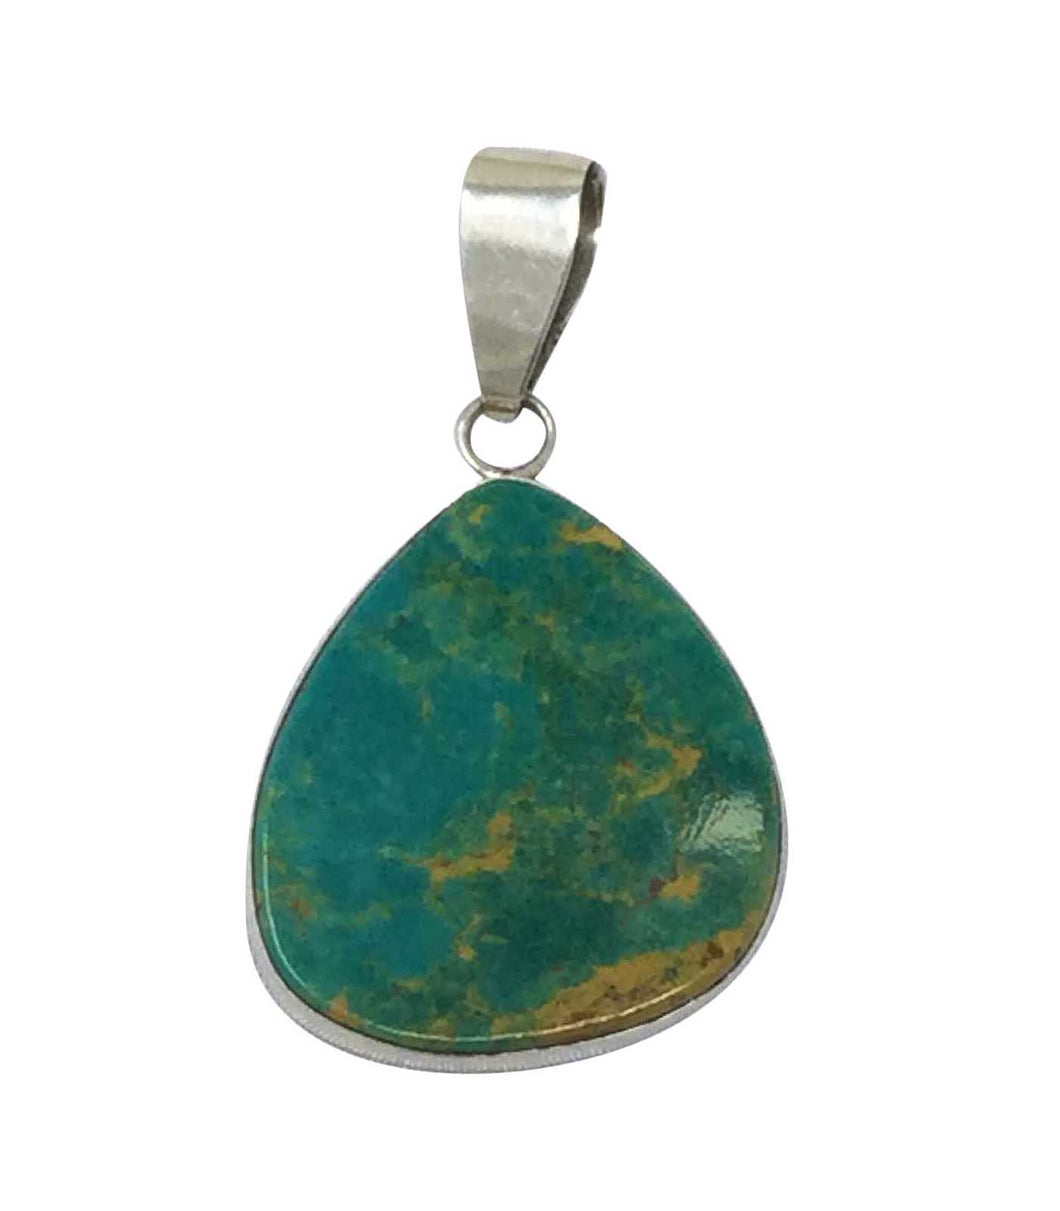 Fred Begay, Pendant, Turquoise Mountain, Sterling Silver, Navajo Made, 1 5/8